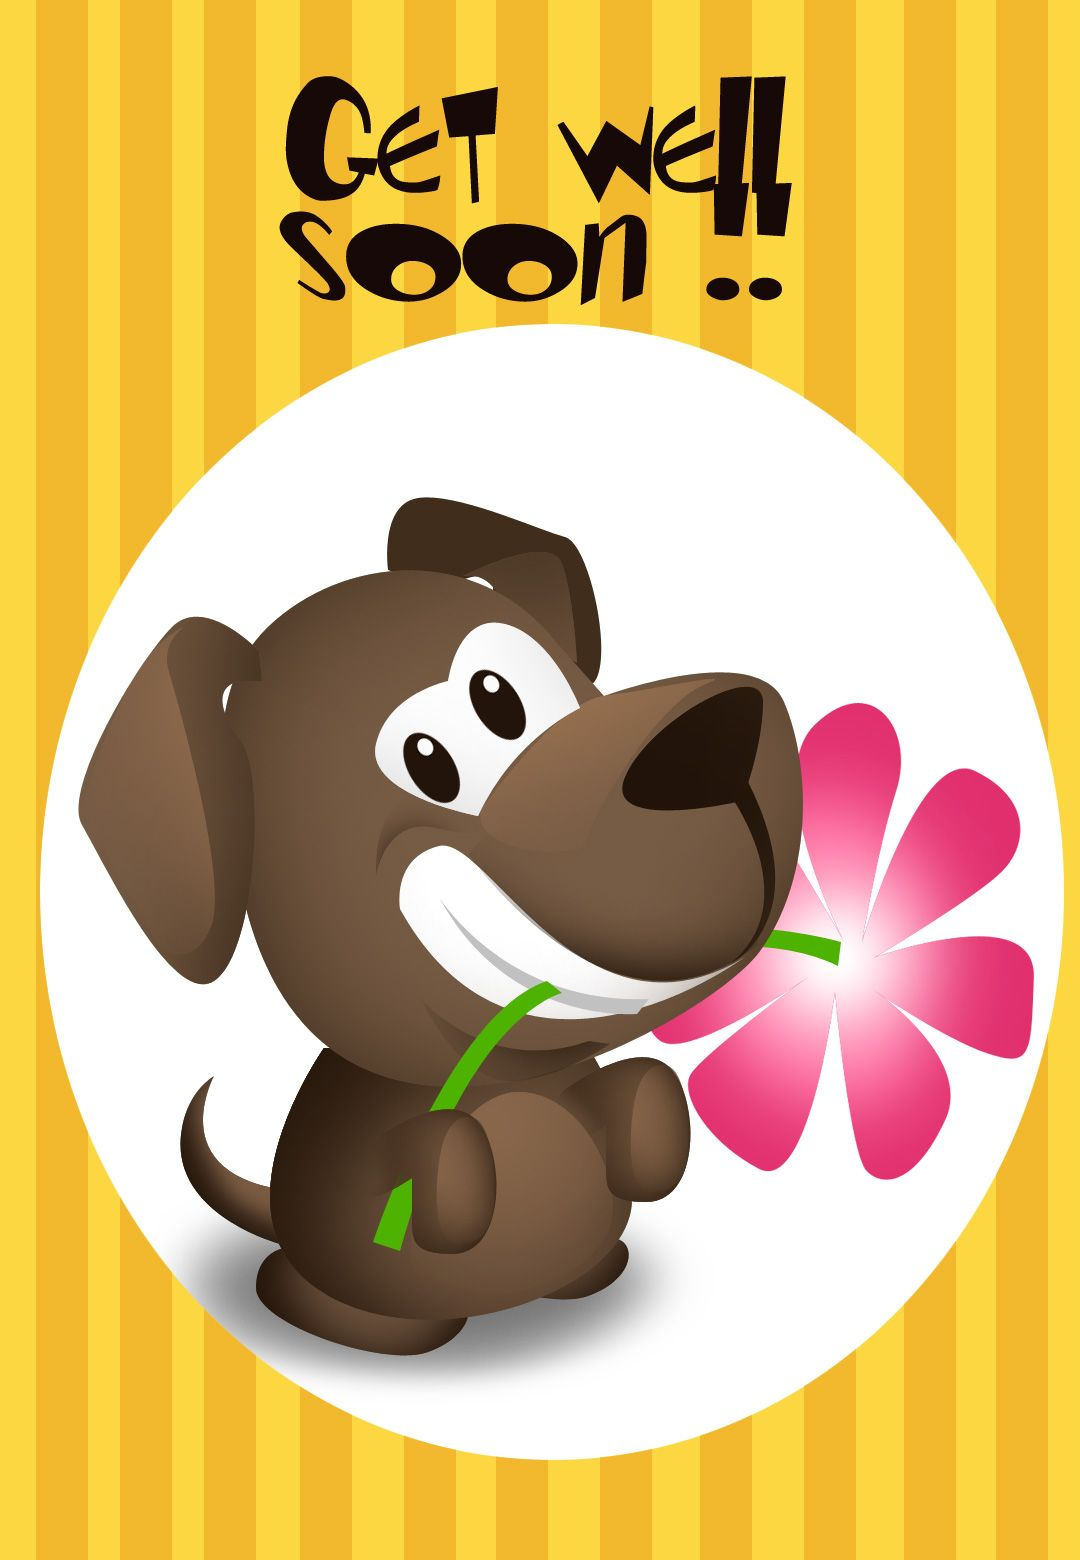 Plush Get Well Free Printable Get Well Soon Puppy Greeting Card Get Well Free Printable Get Well Soon Puppy Greeting Card Free Get Well Cards To Color Free Get Well Cards To Download